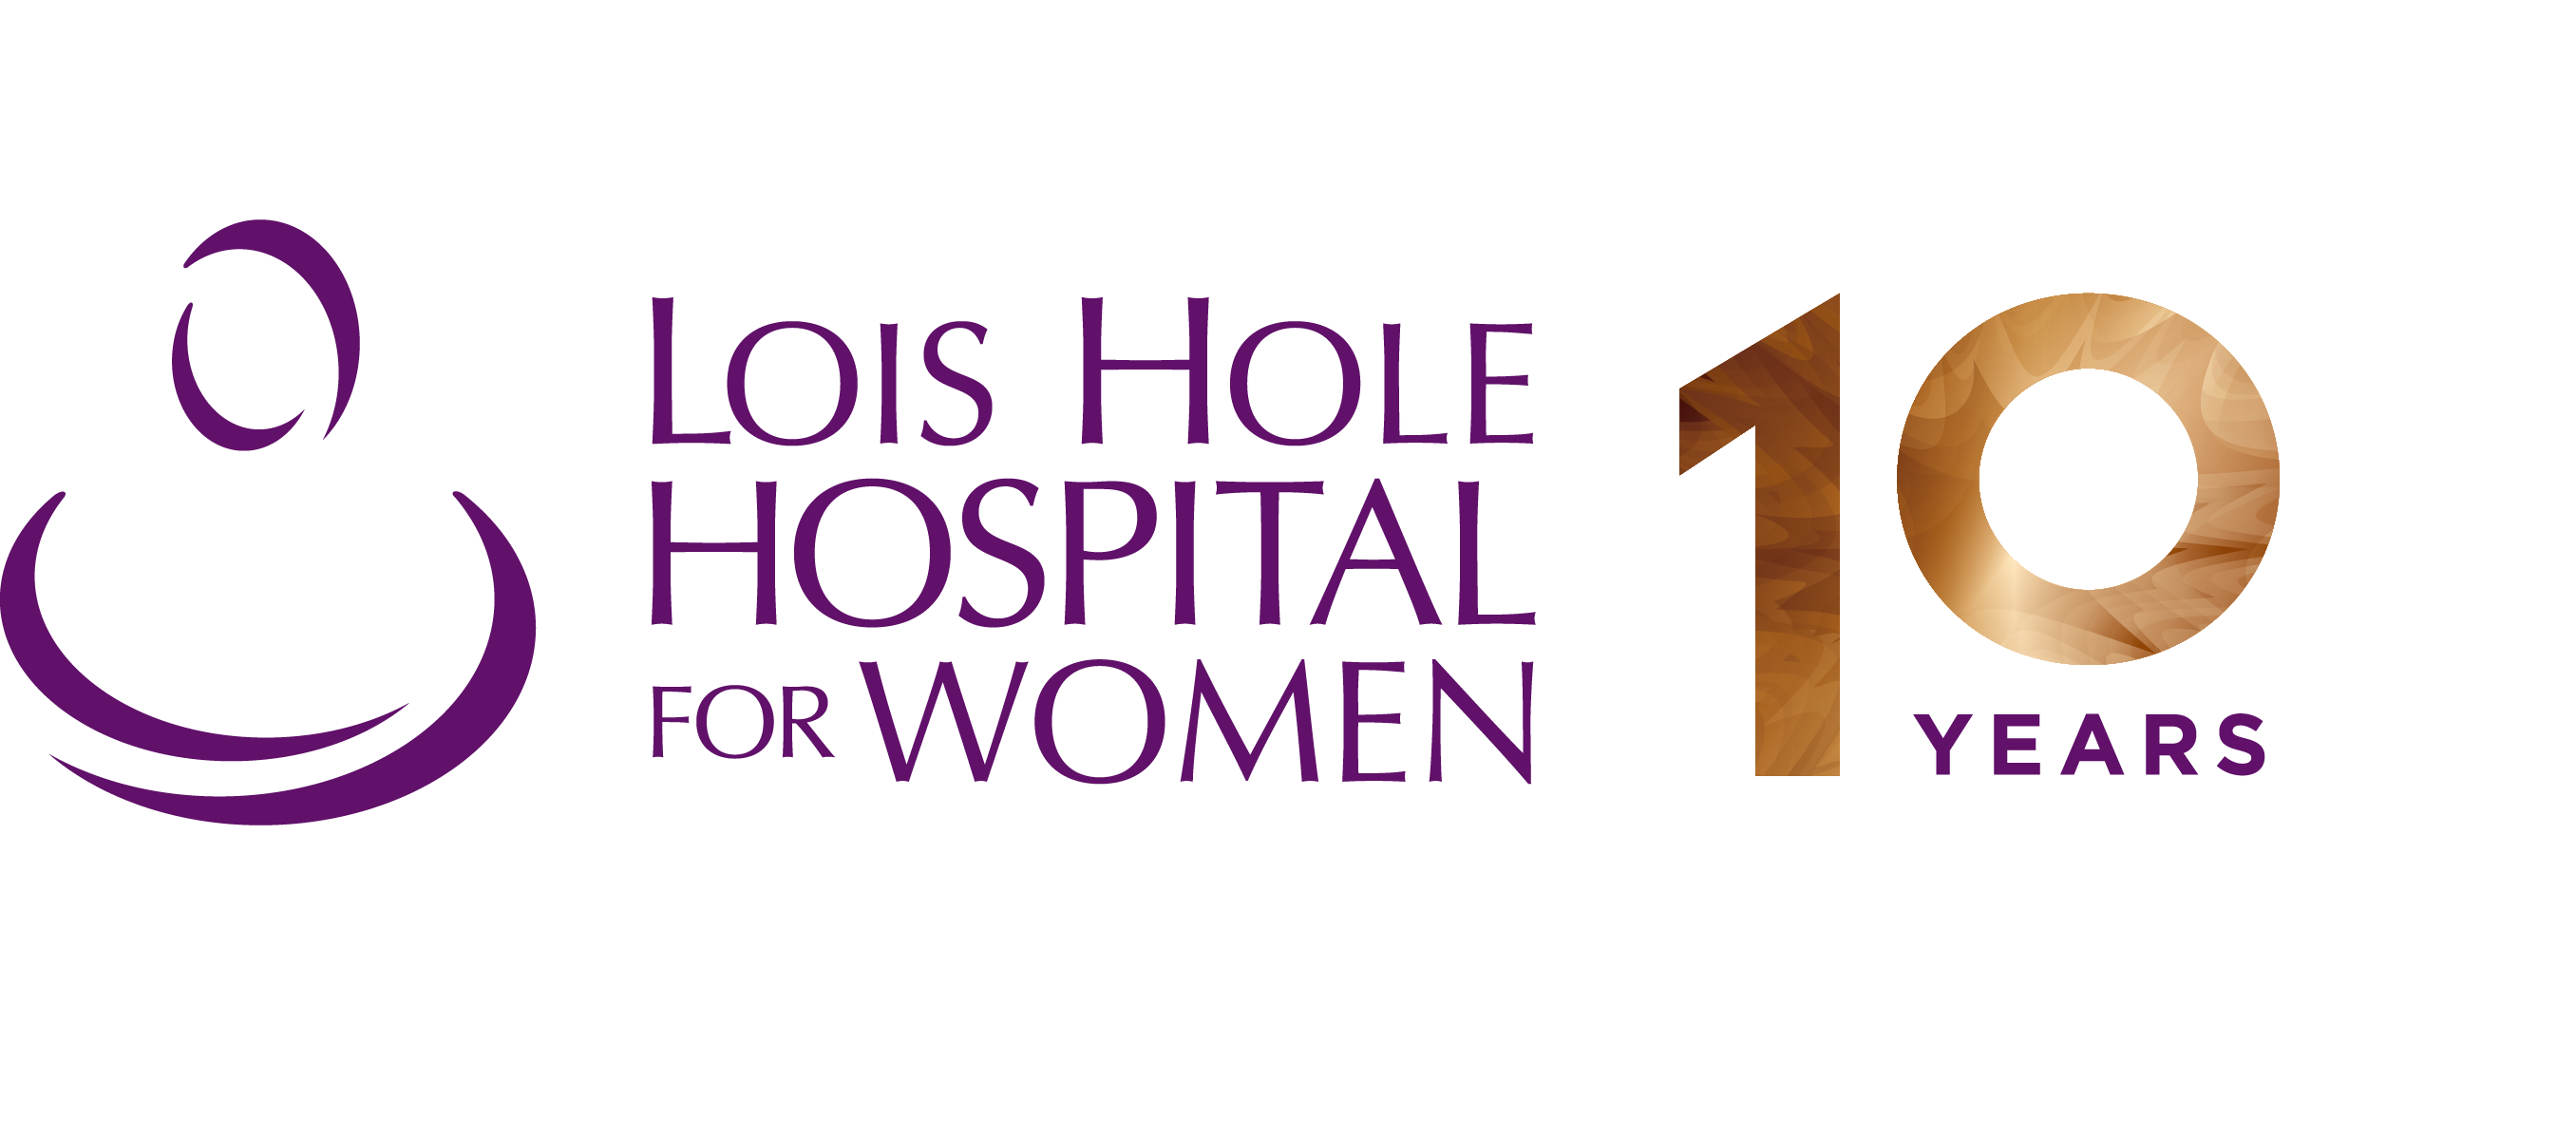 Lois Hope Hospital for Women 10 Year Logo